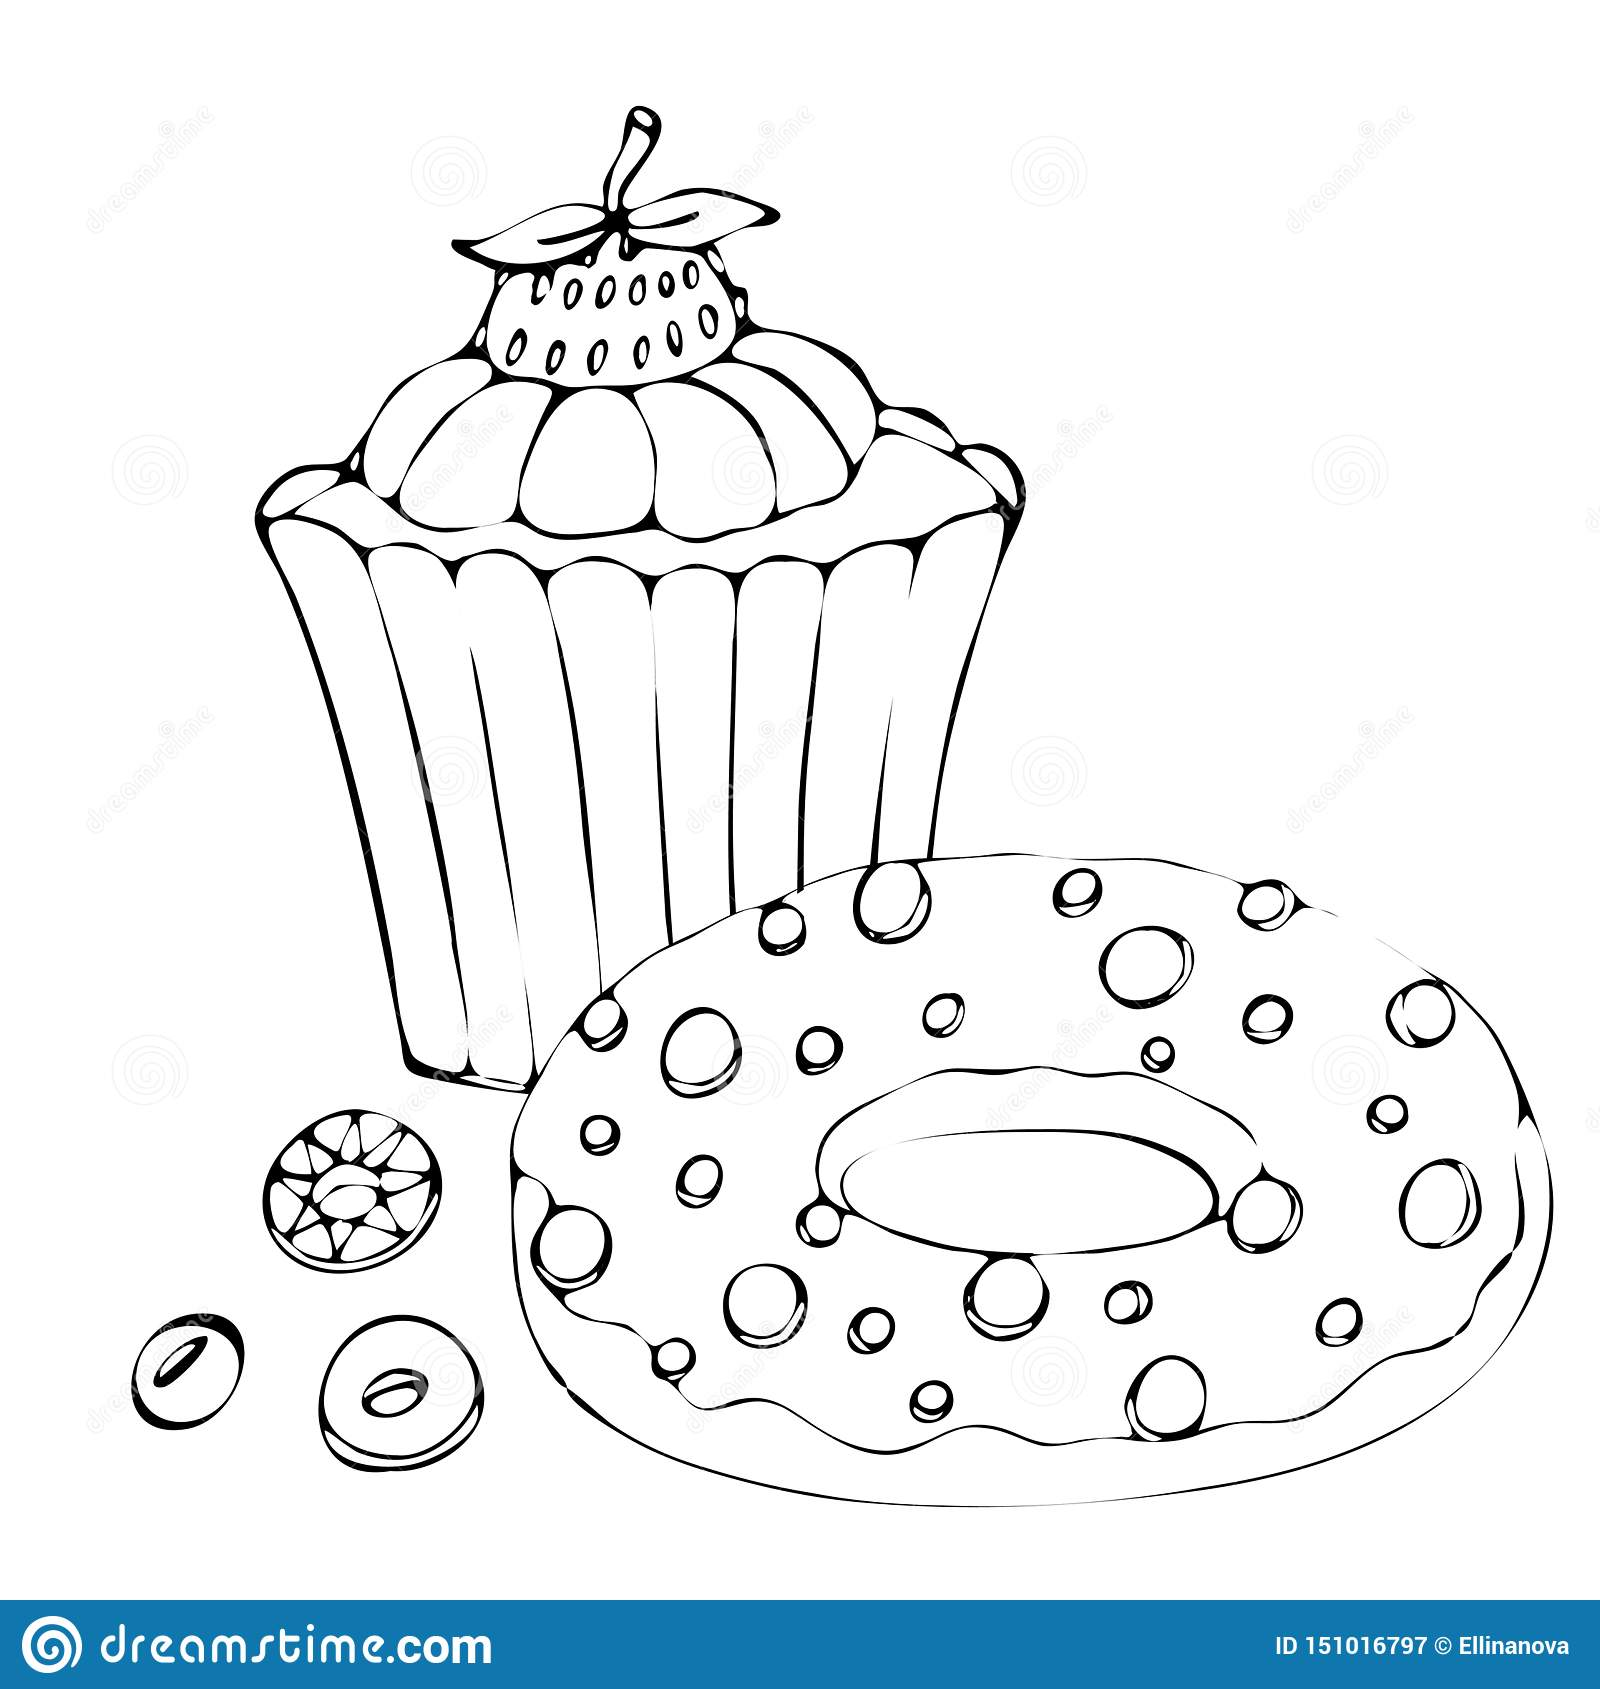 Food Coloring Page With Cake Or Cupcake, Candy Stock Vector ...